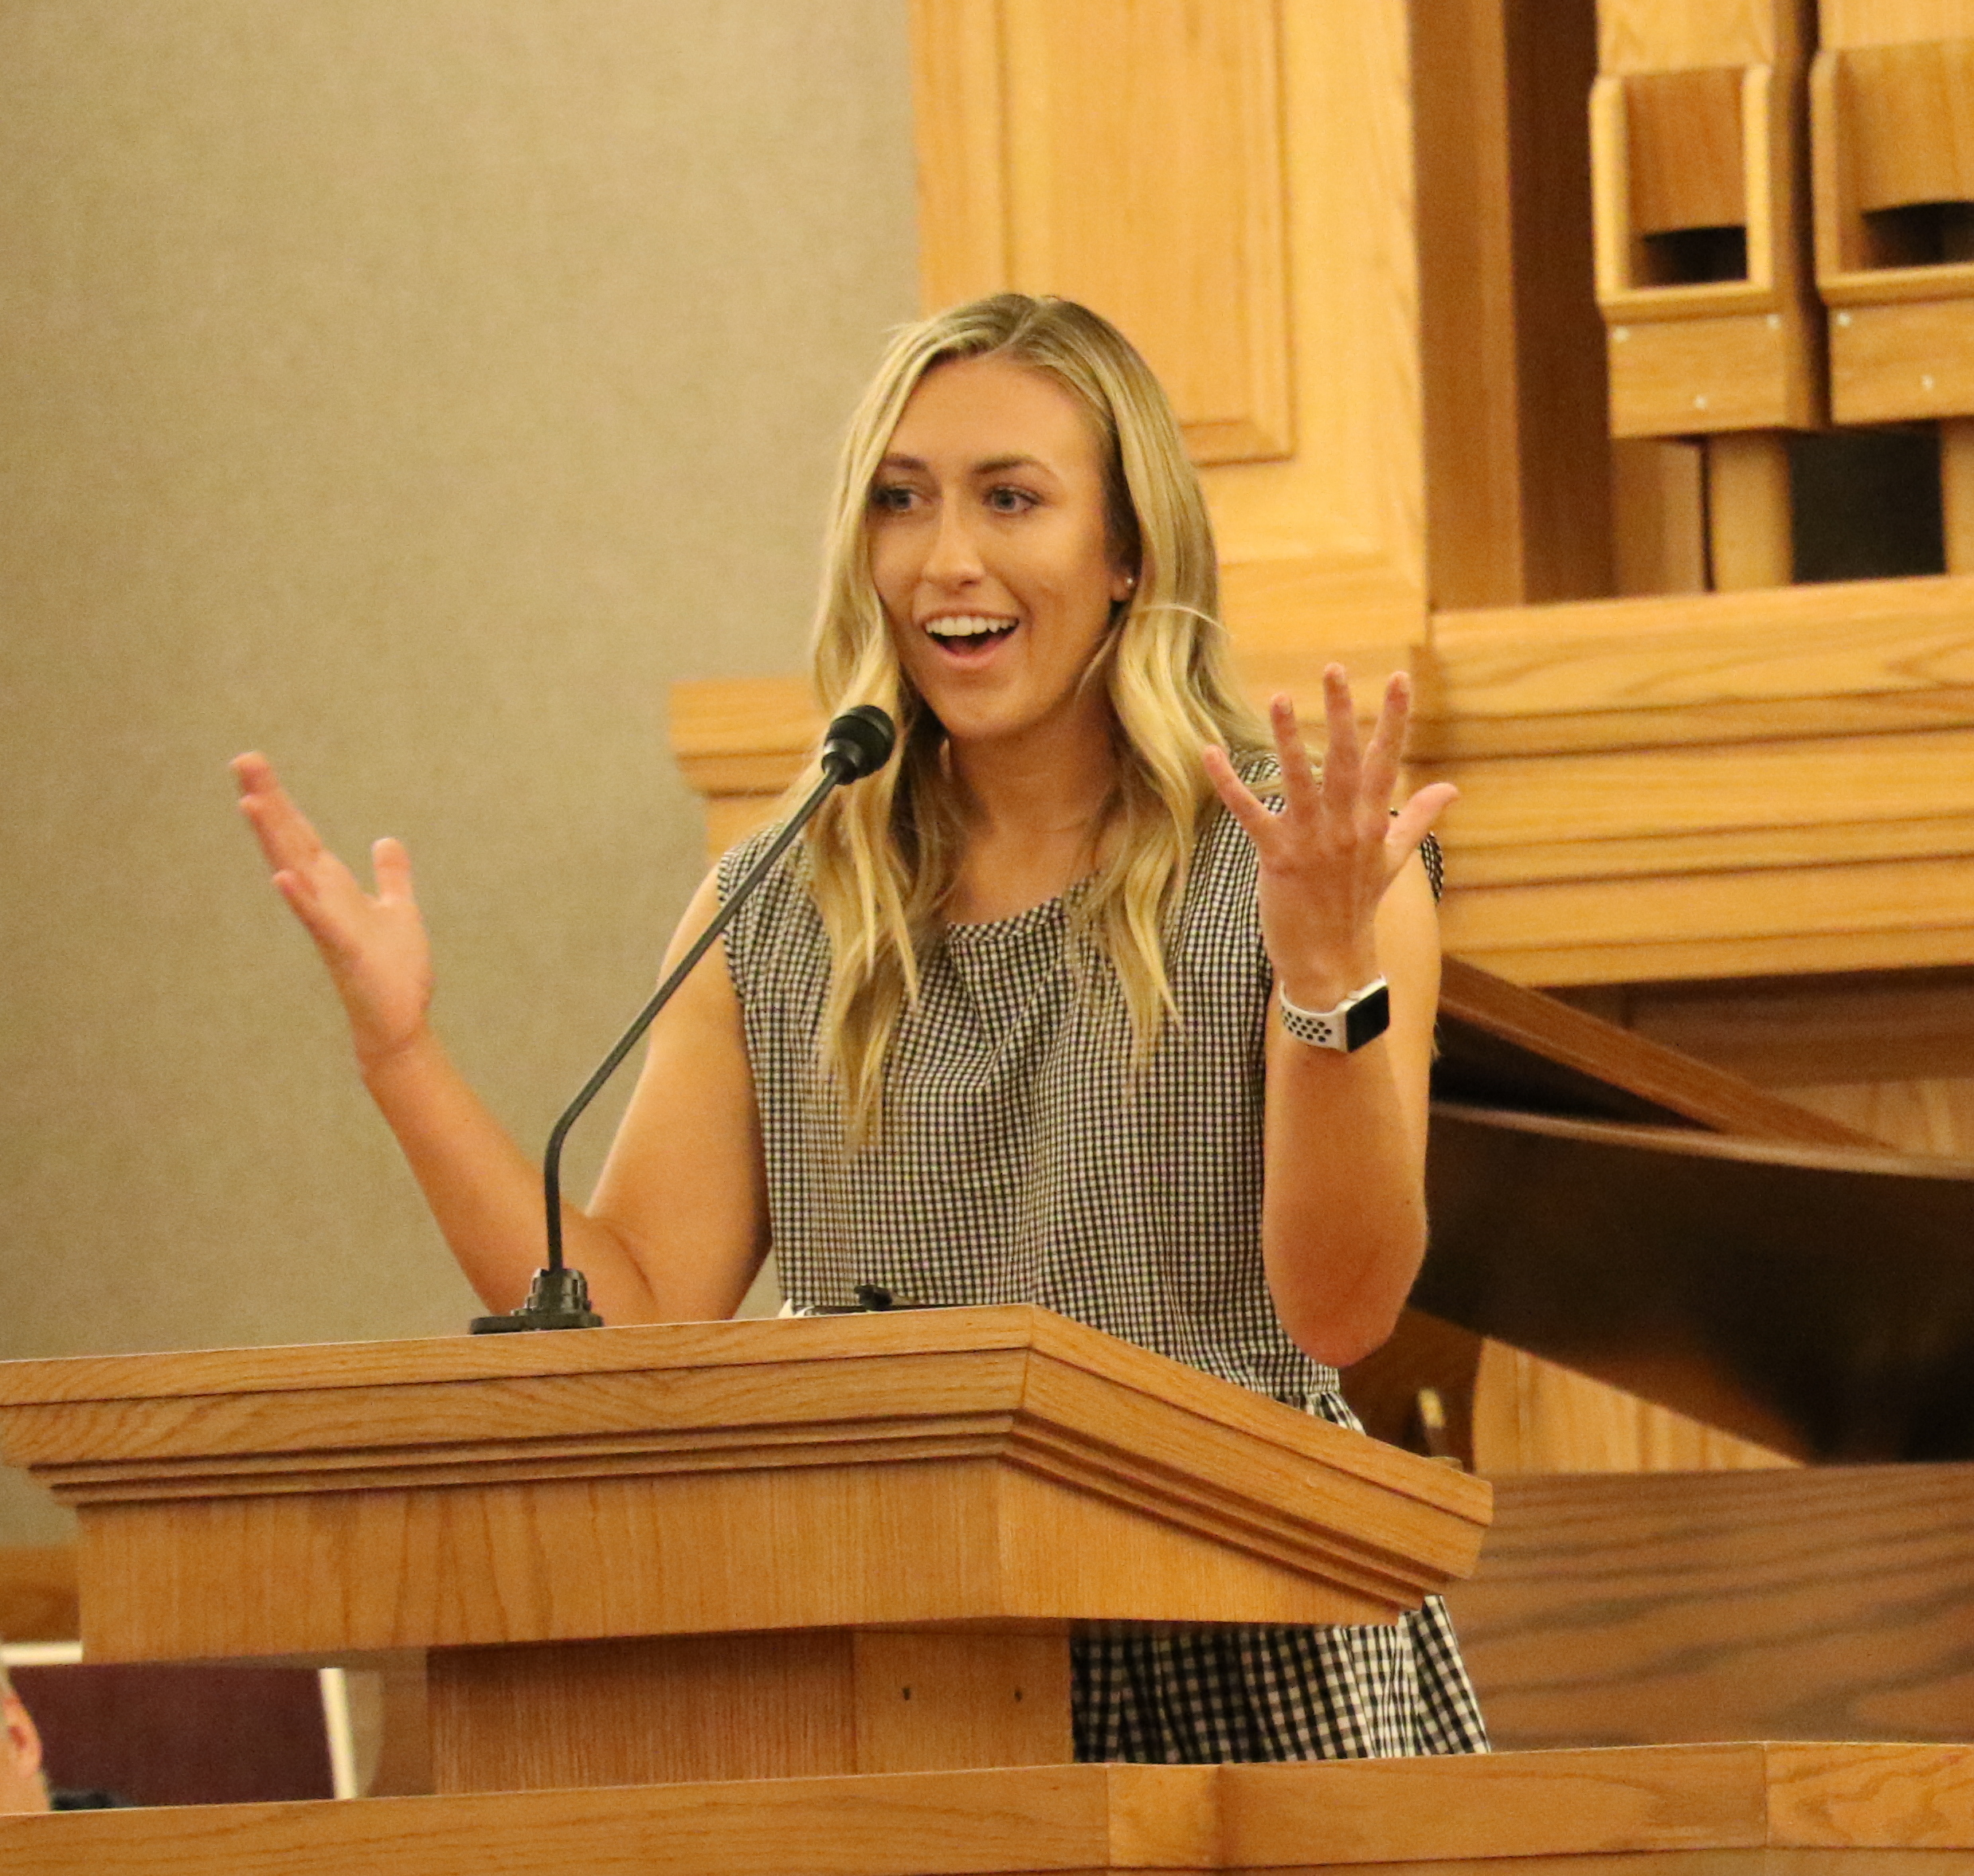 Utah beach volleyball player Olivia Teerlink talks about overcoming trials at a Sept. 27, 2019, devotional at the University of Utah.